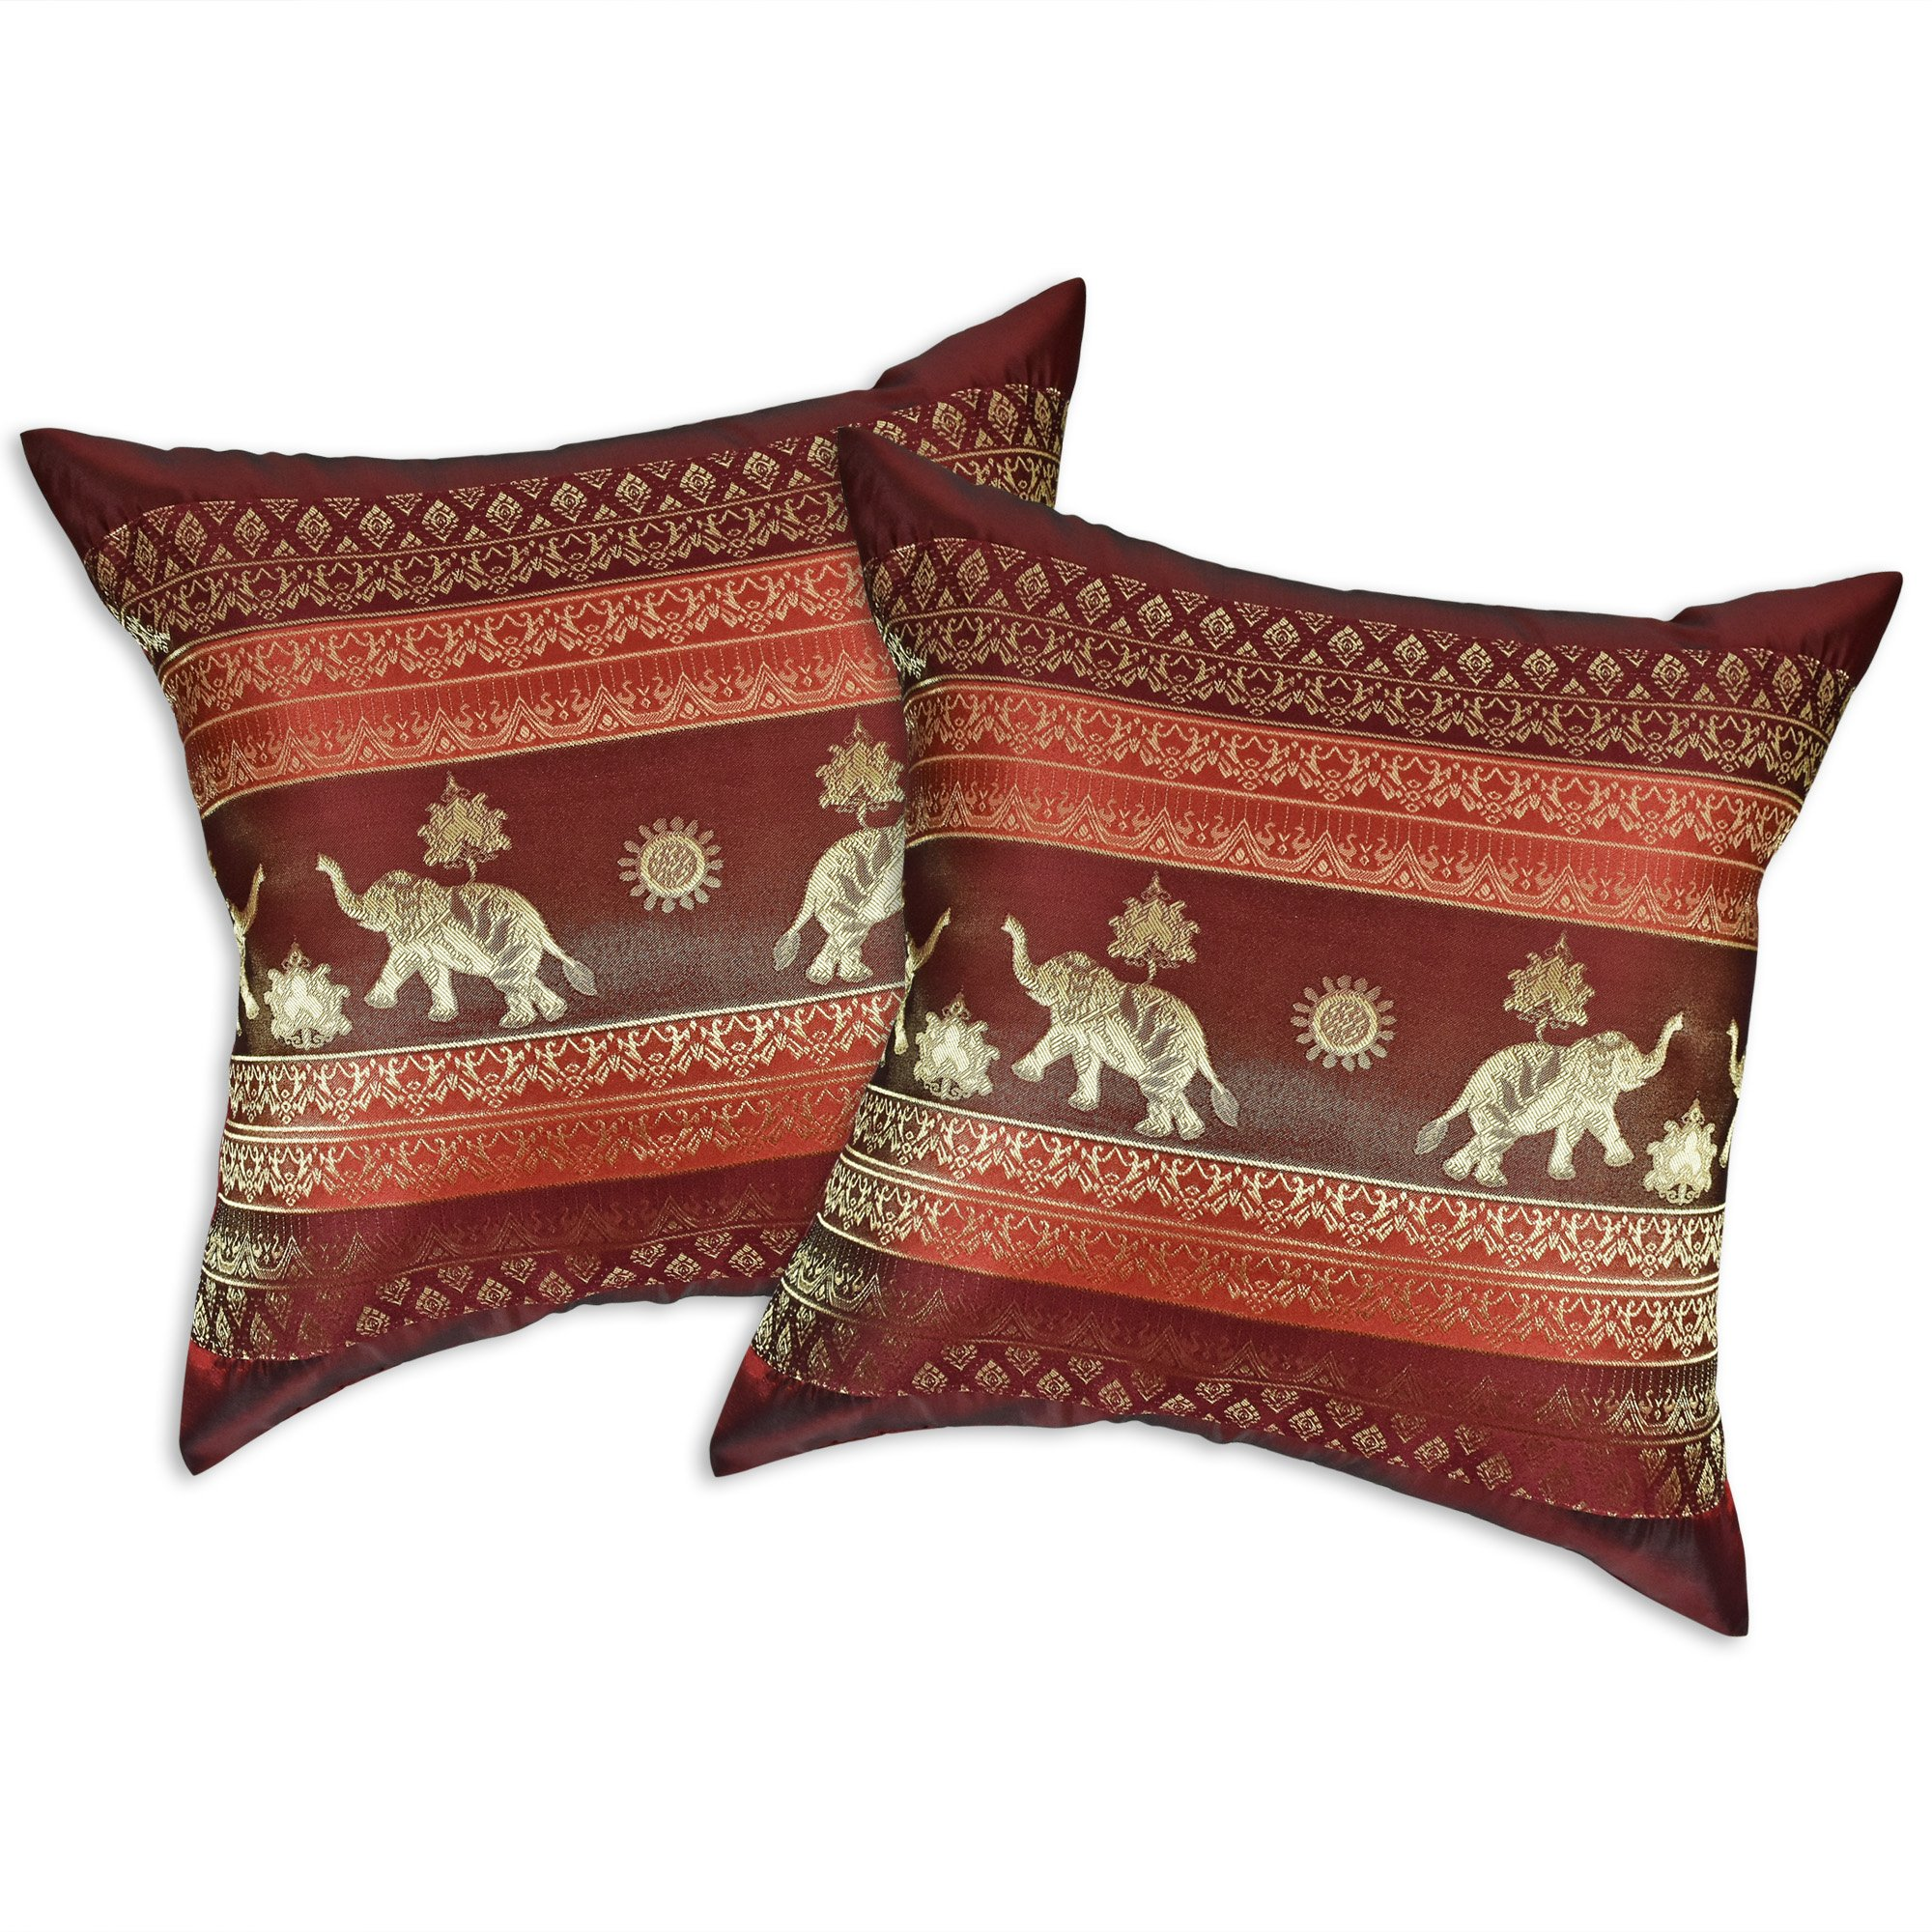 AeraVida Red Wine Thai Elephant Sun Stripes Silk Throw Pillow Cushion Cover Set (Red) by AeraVida